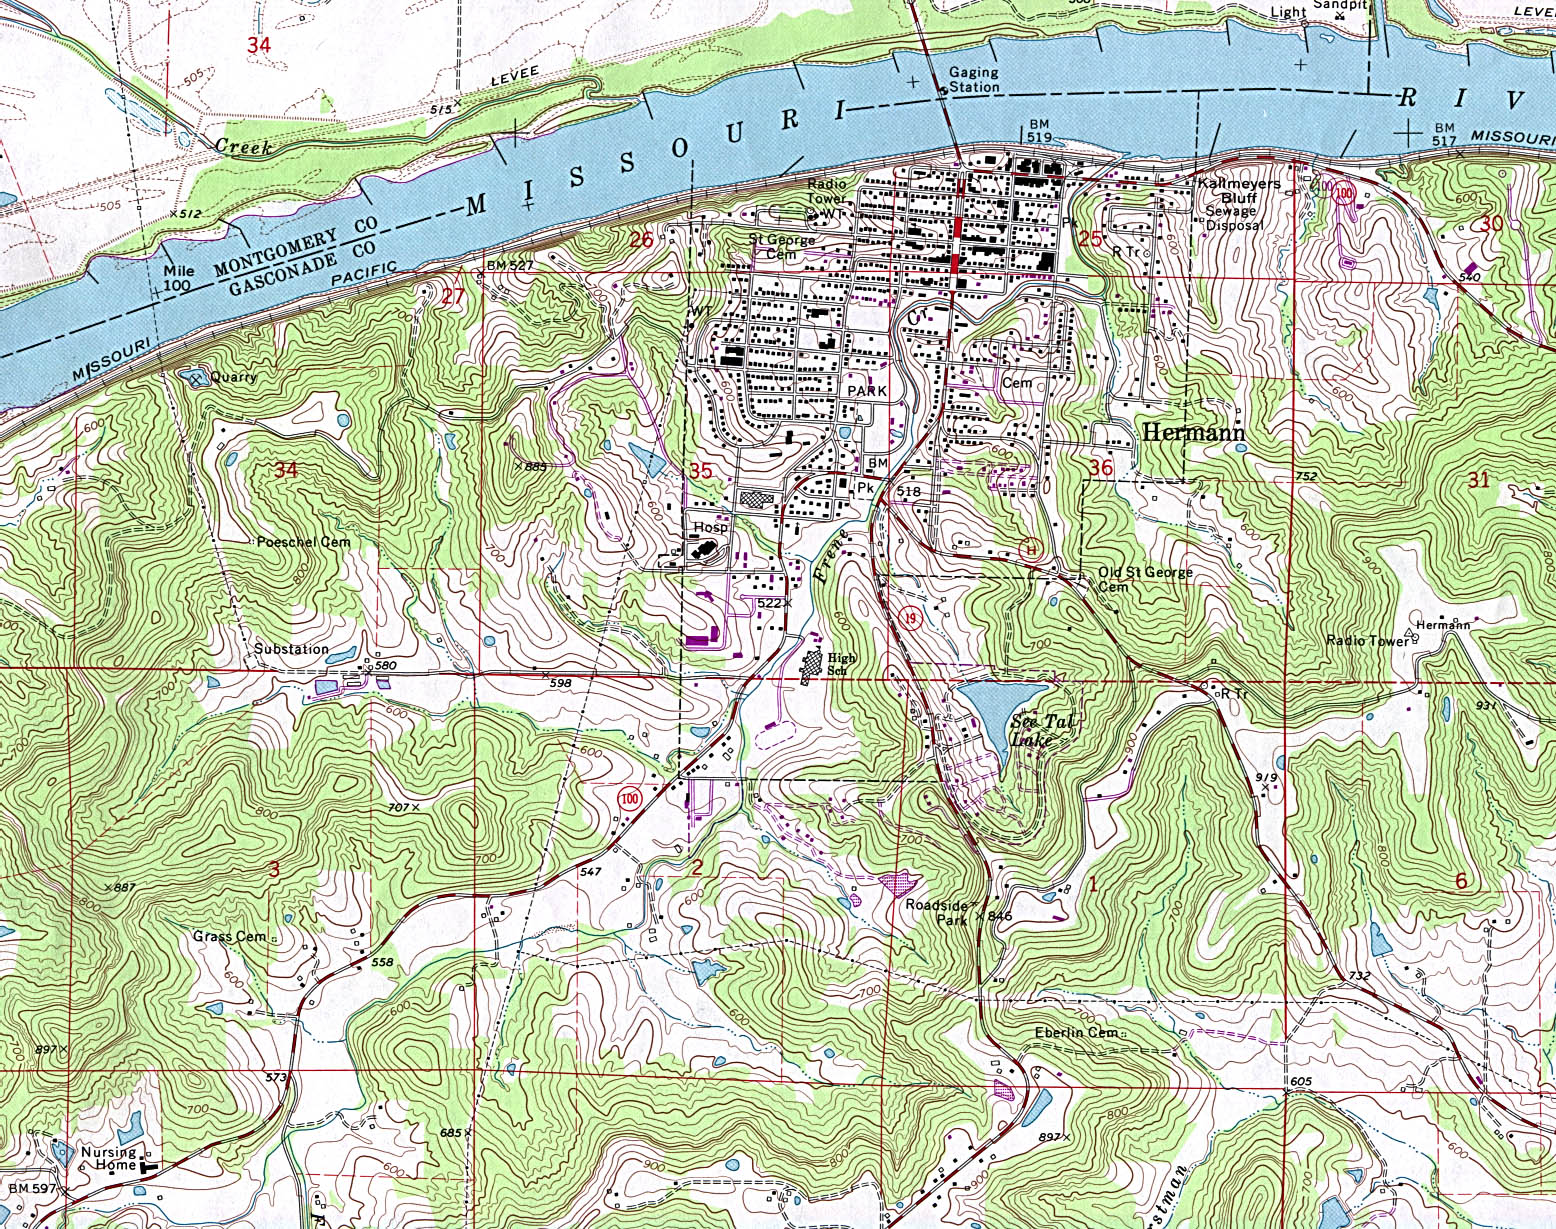 Hermann Topographic City Map, Missouri, United States